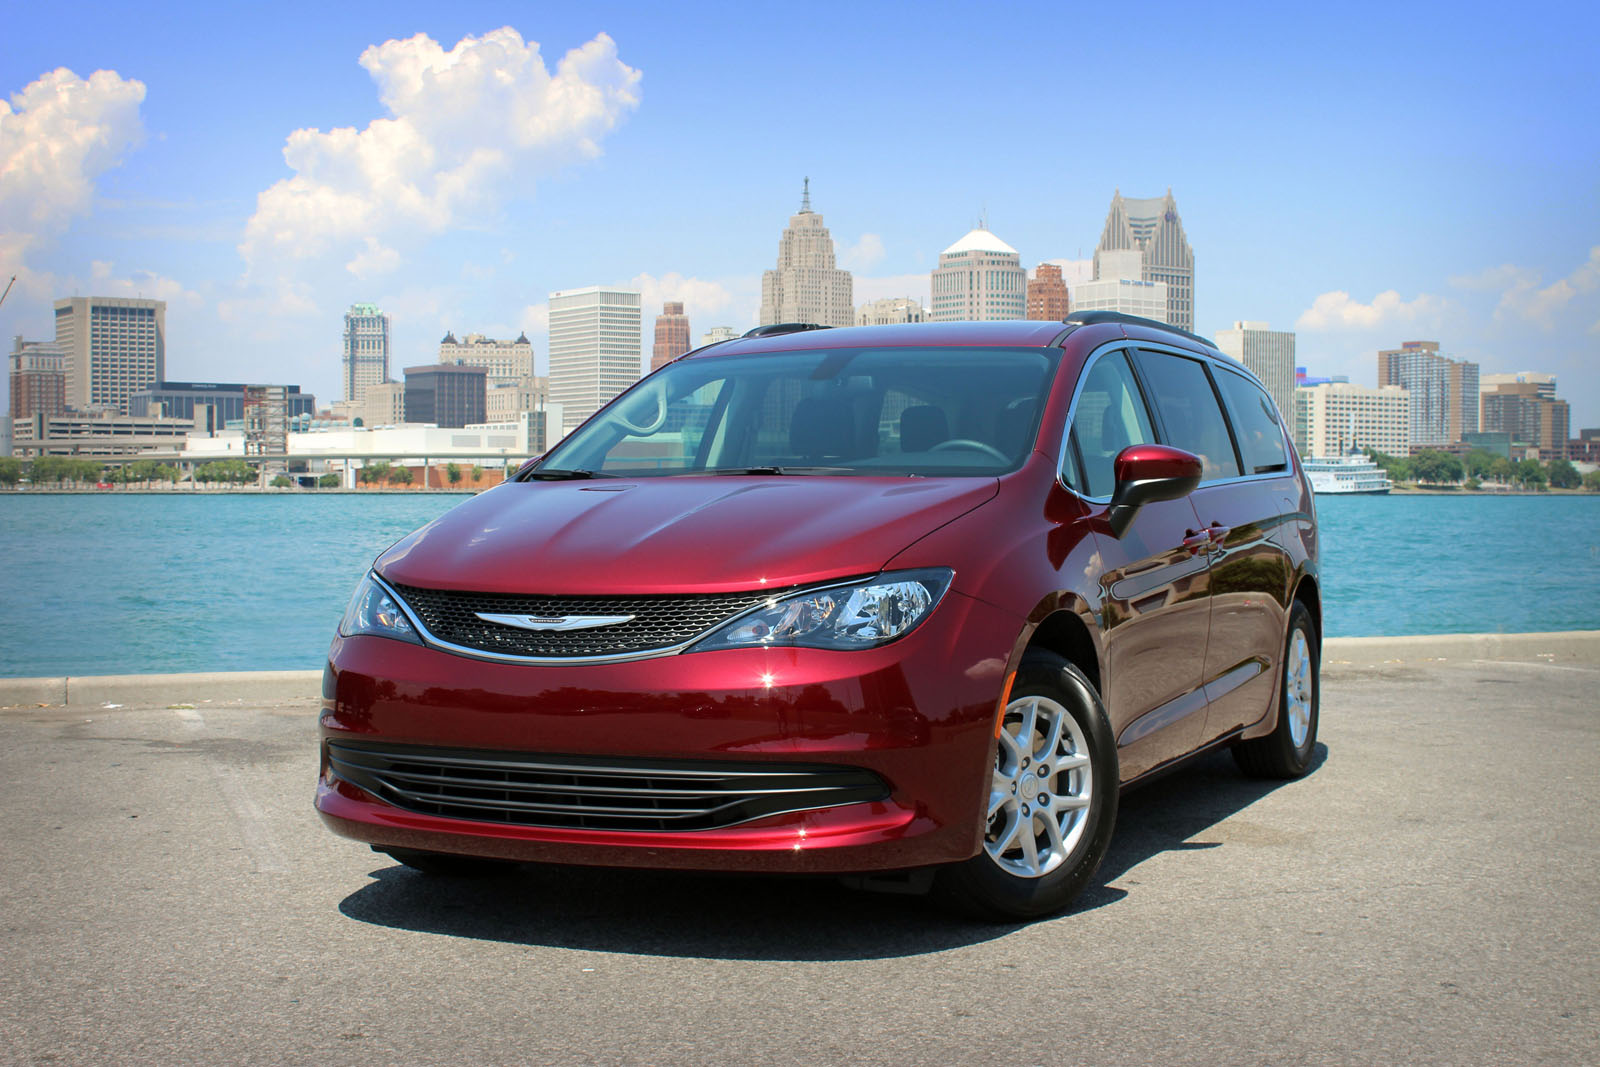 2021 Chrysler Grand Caravan | Photo: Chrysler